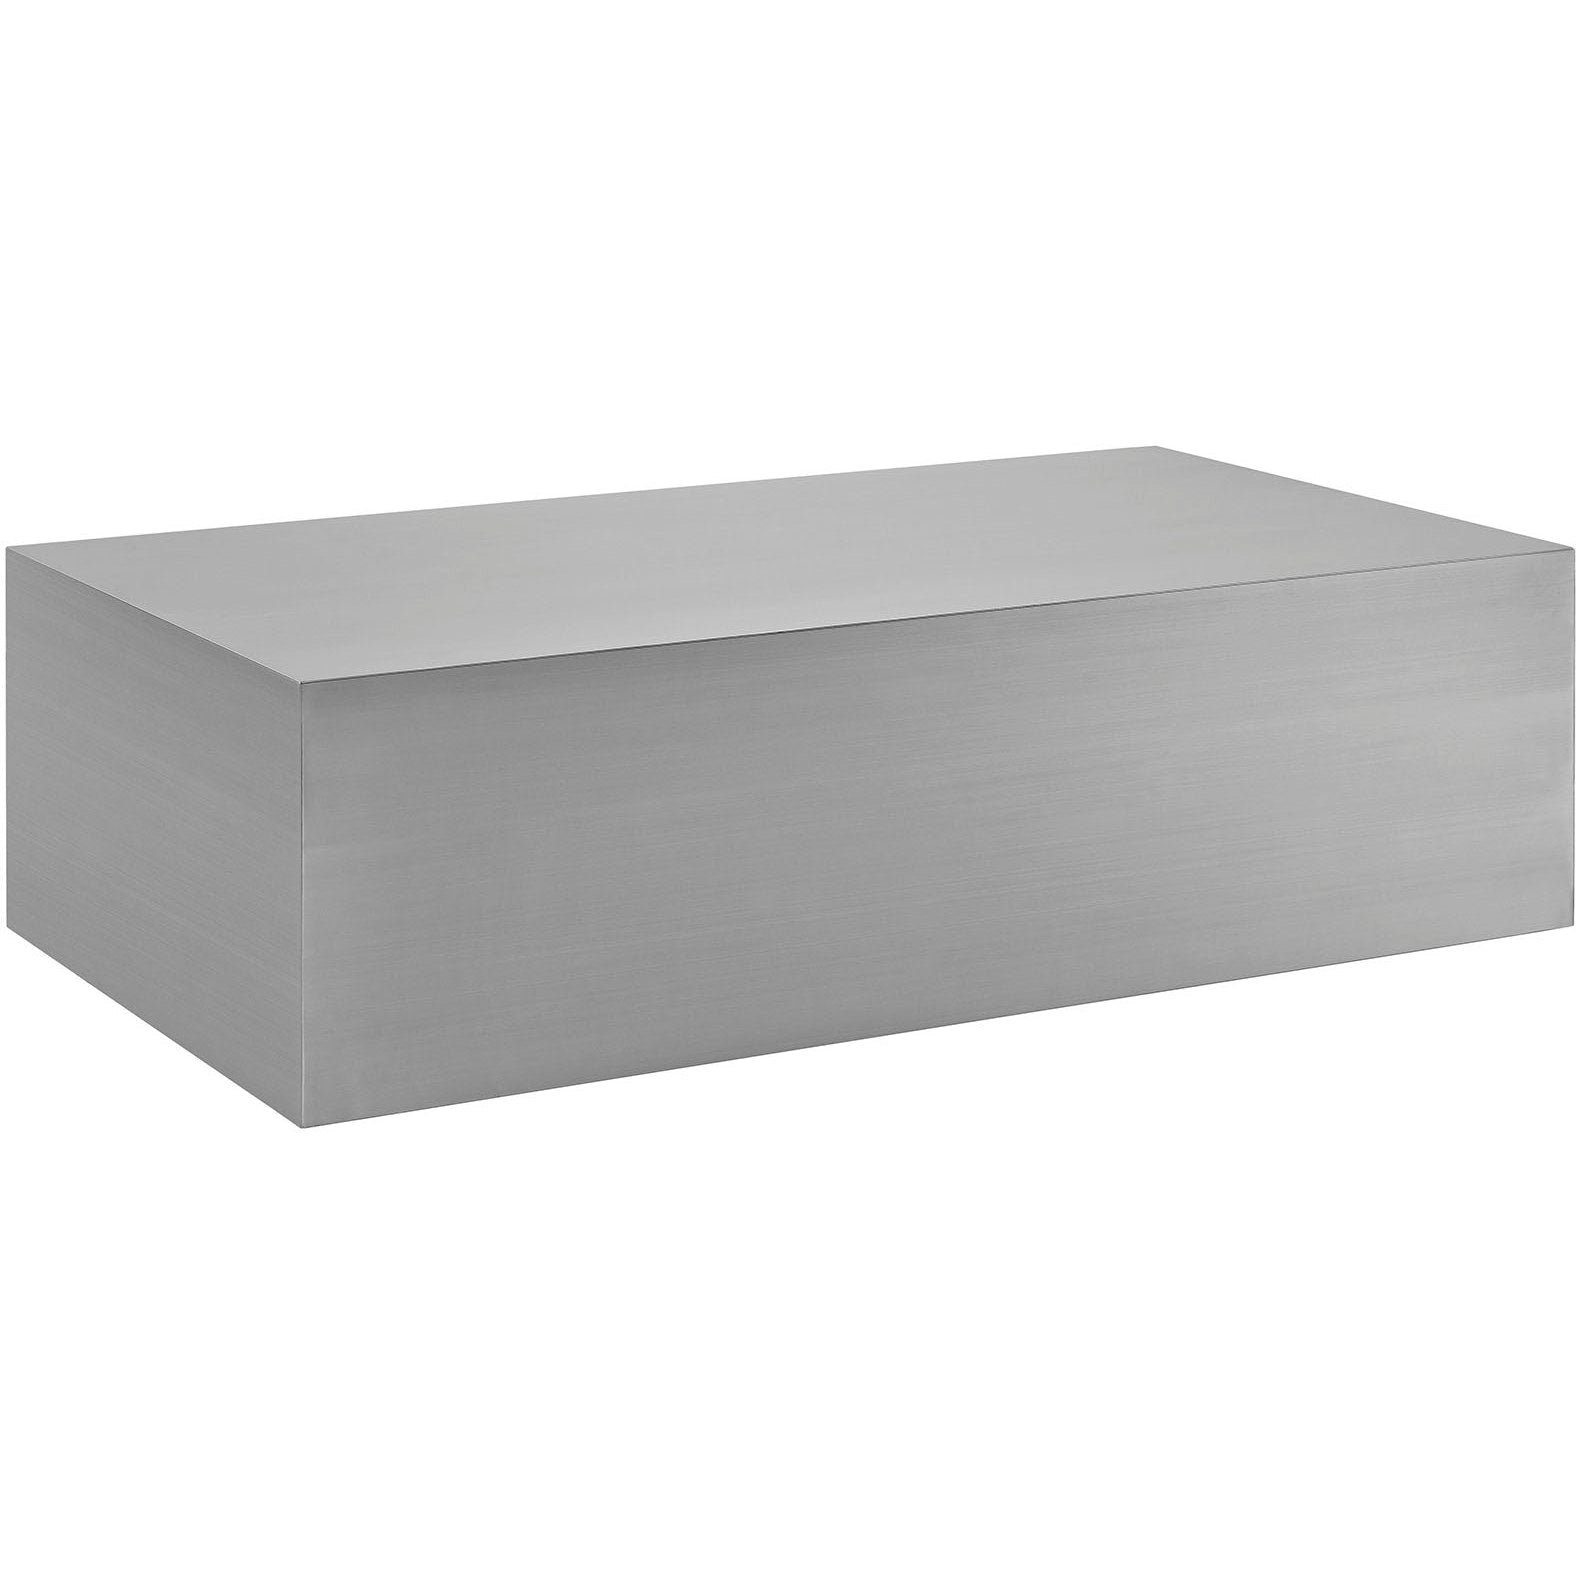 Cast Stainless Steel Coffee Table - Silver